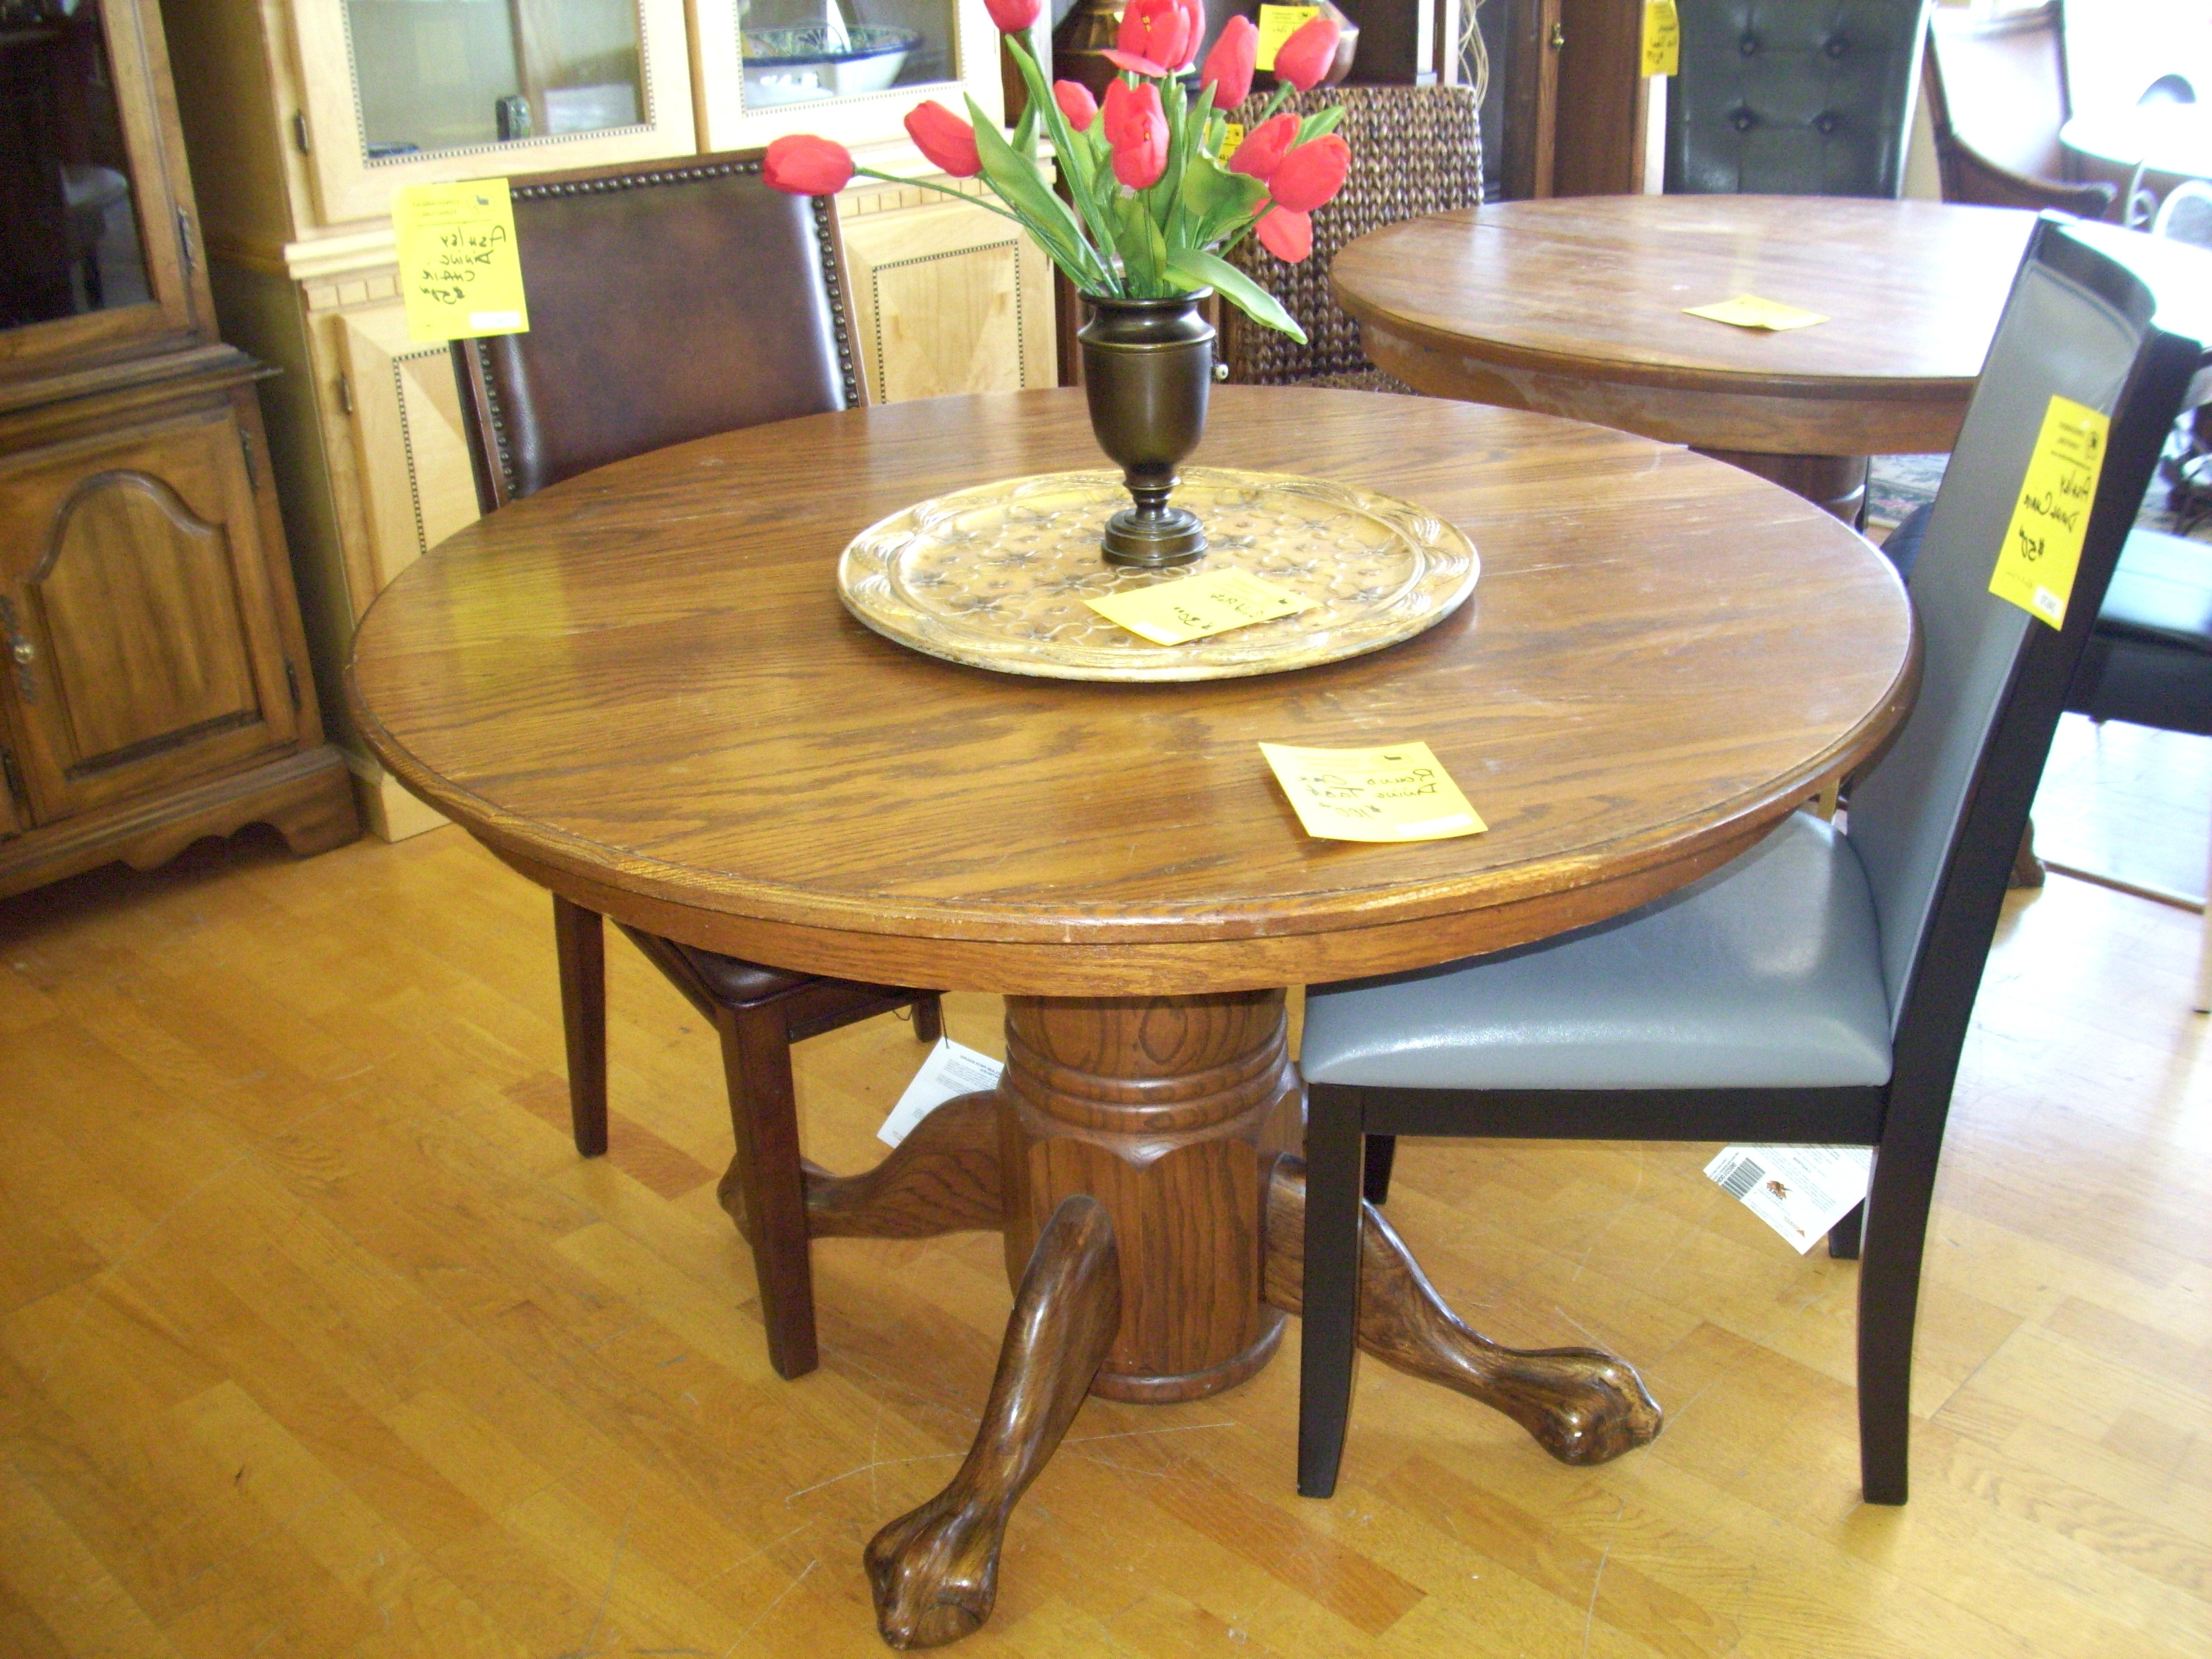 Most Popular 45 Inch Round Glass Top Dining Table Image Ideas With Regard To Glass Top Oak Dining Tables (View 17 of 25)